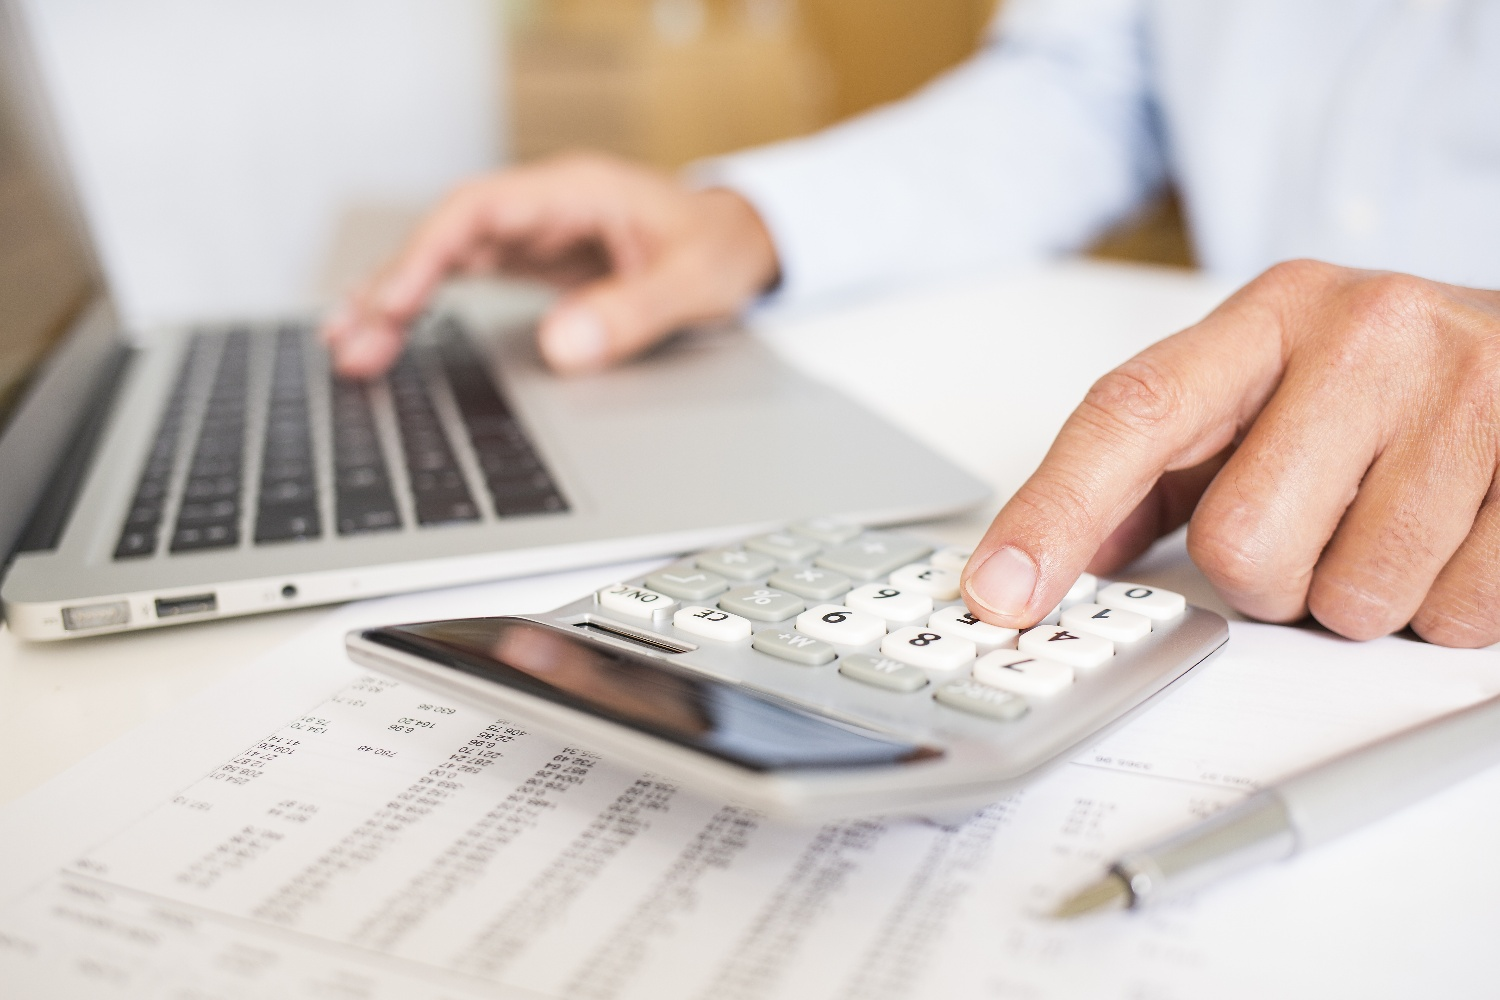 Man working with calculator and laptop